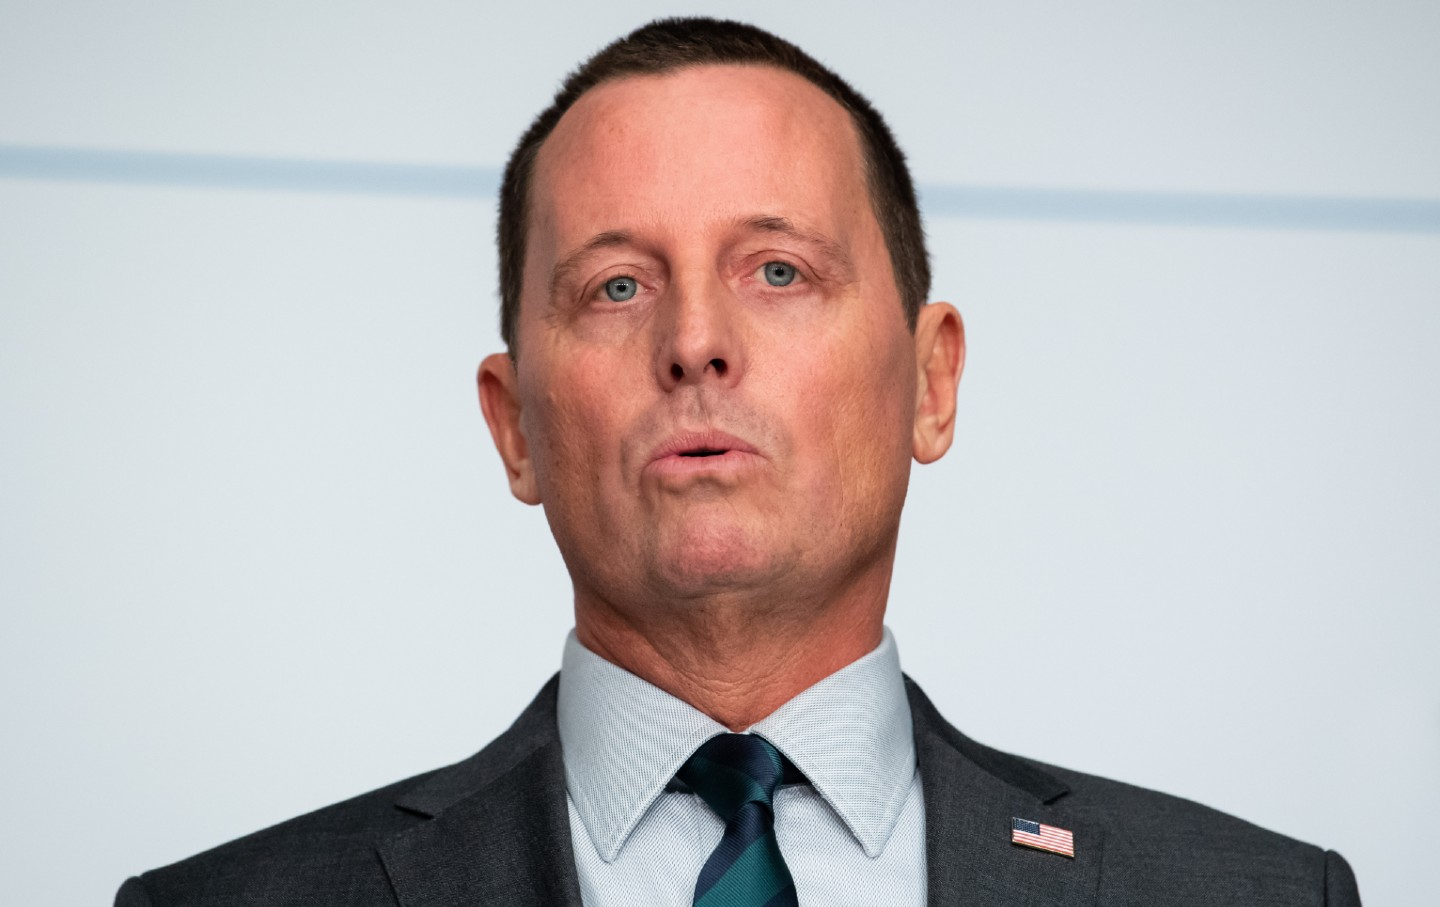 Close-up image of Richard Grenell speaking.